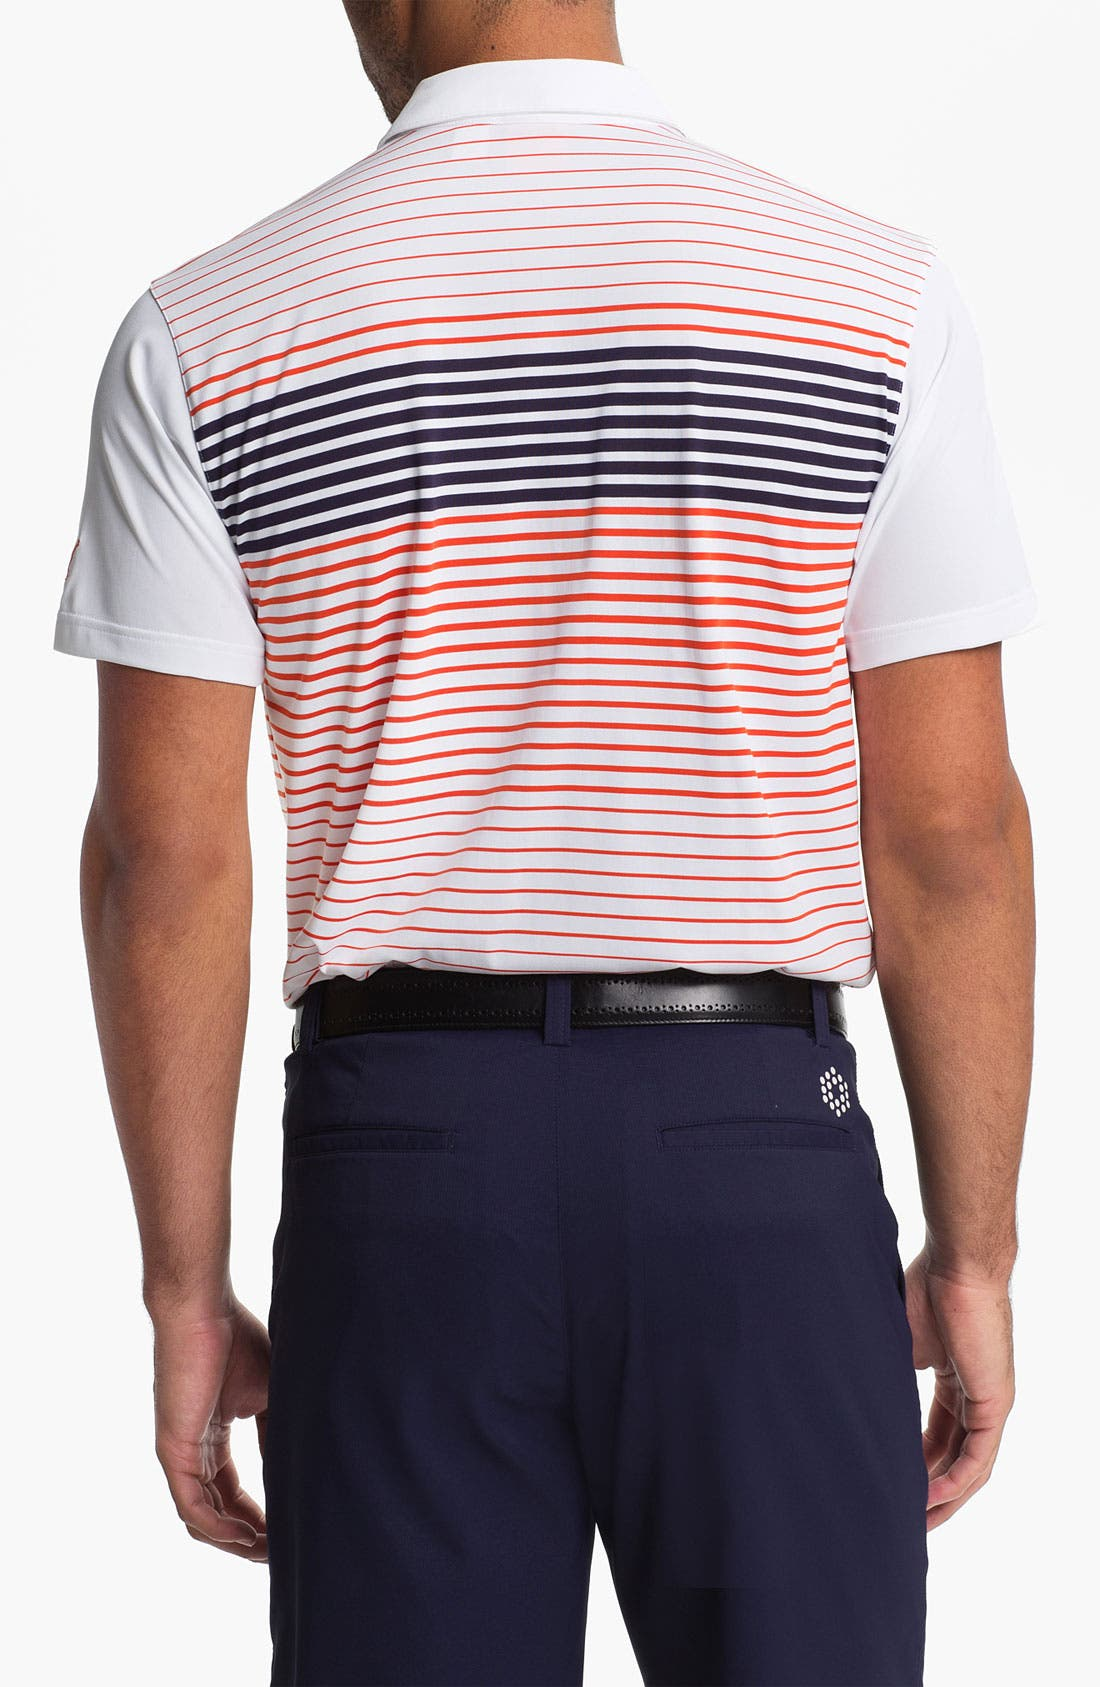 Alternate Image 2  - PUMA GOLF 'Engineered Stripe' dryCELL™ Tech Polo